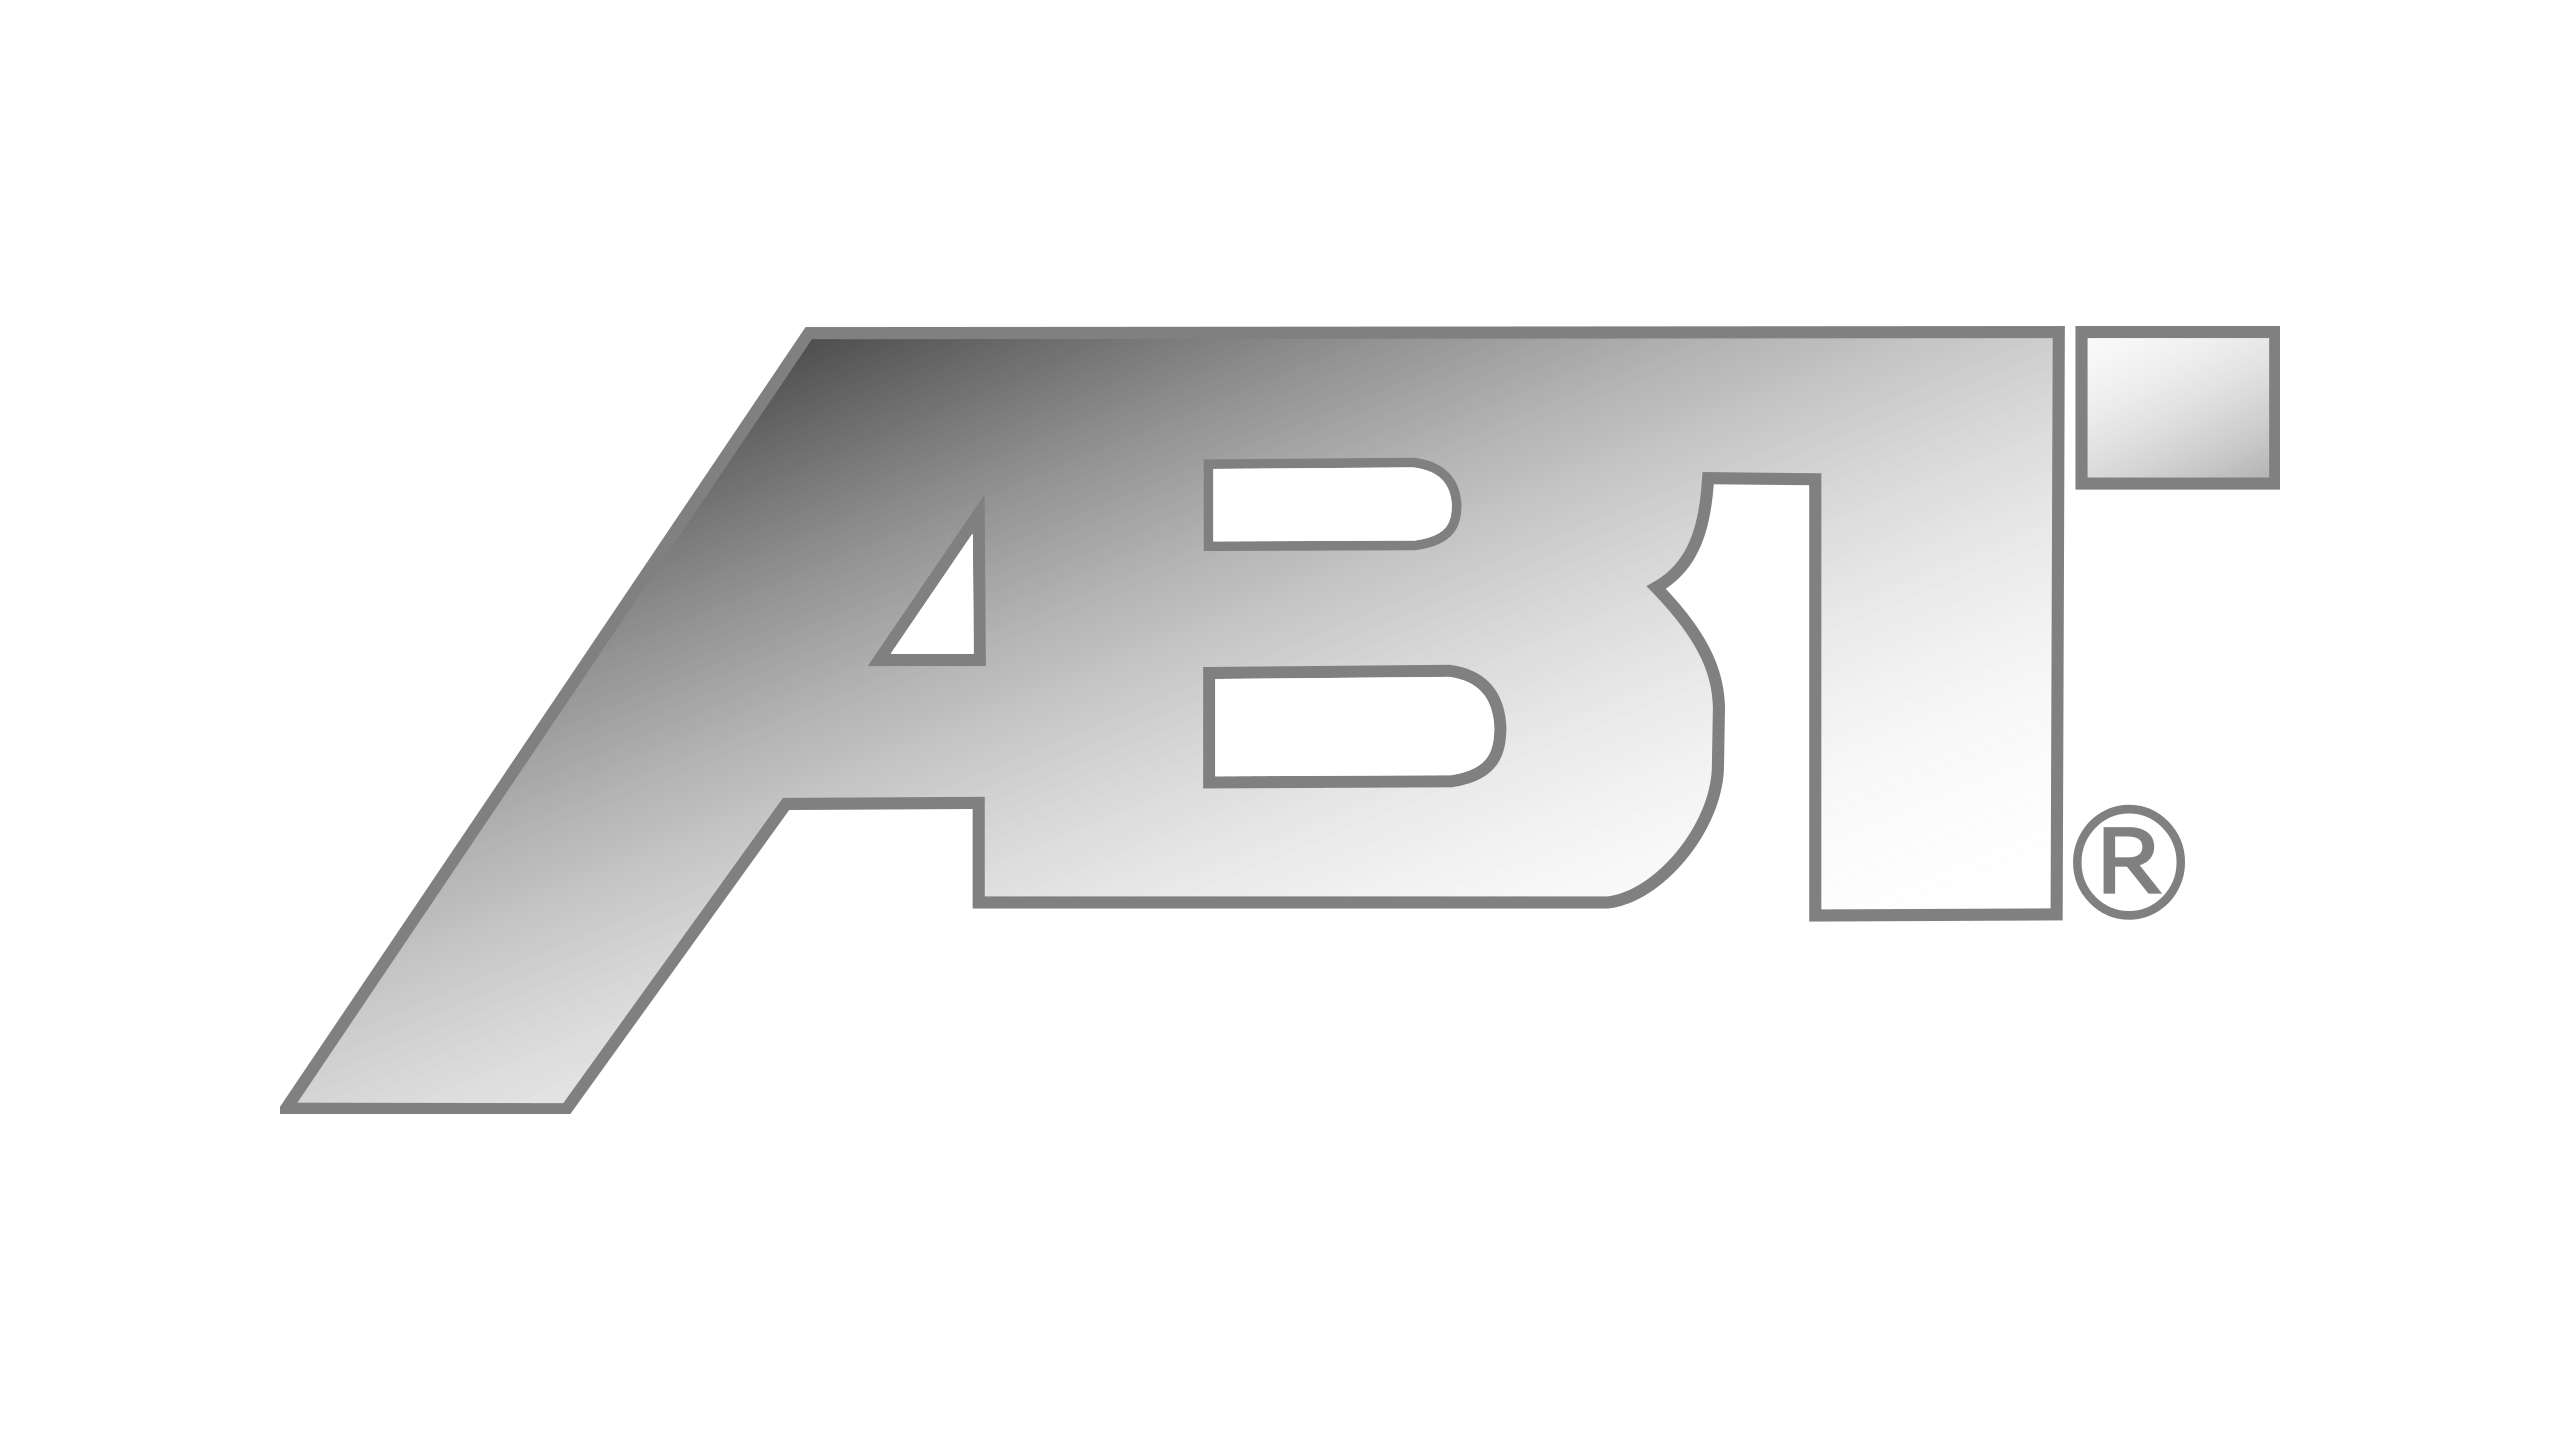 2560x1440 HD Png - Abt Sportsline PNG